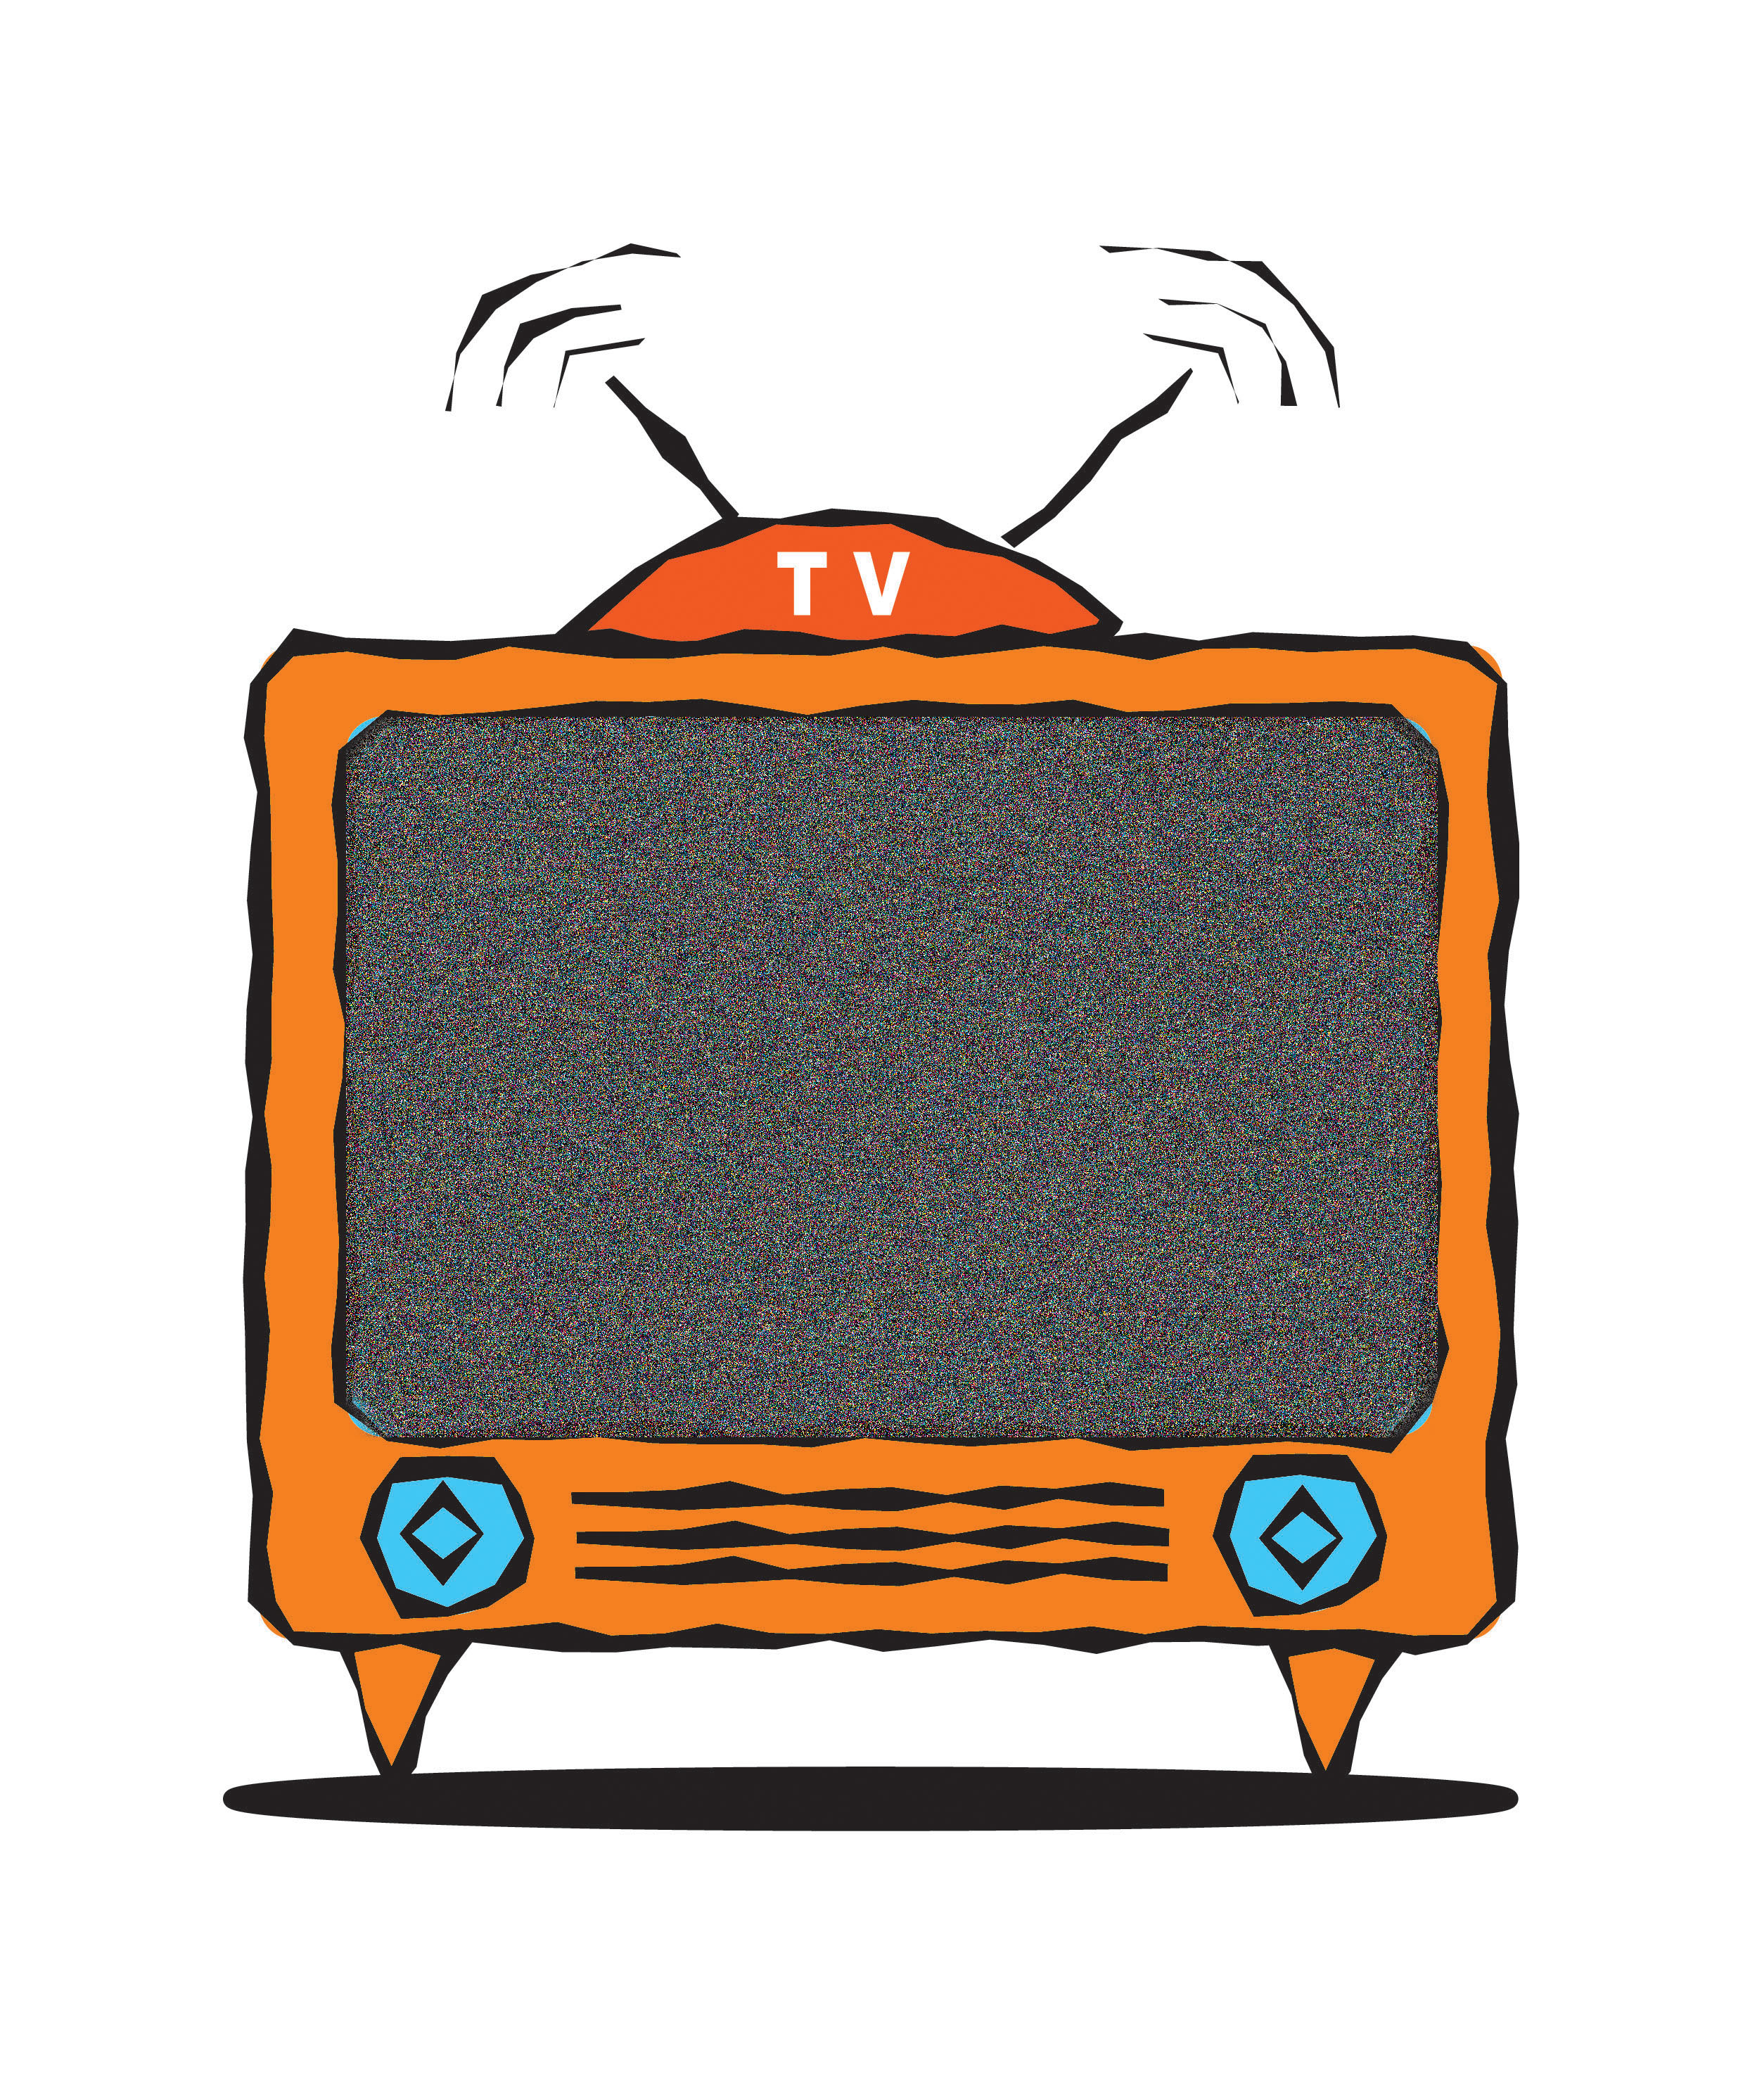 Tv And Radio Stock Illustrations Clipart Free Clip Art Images